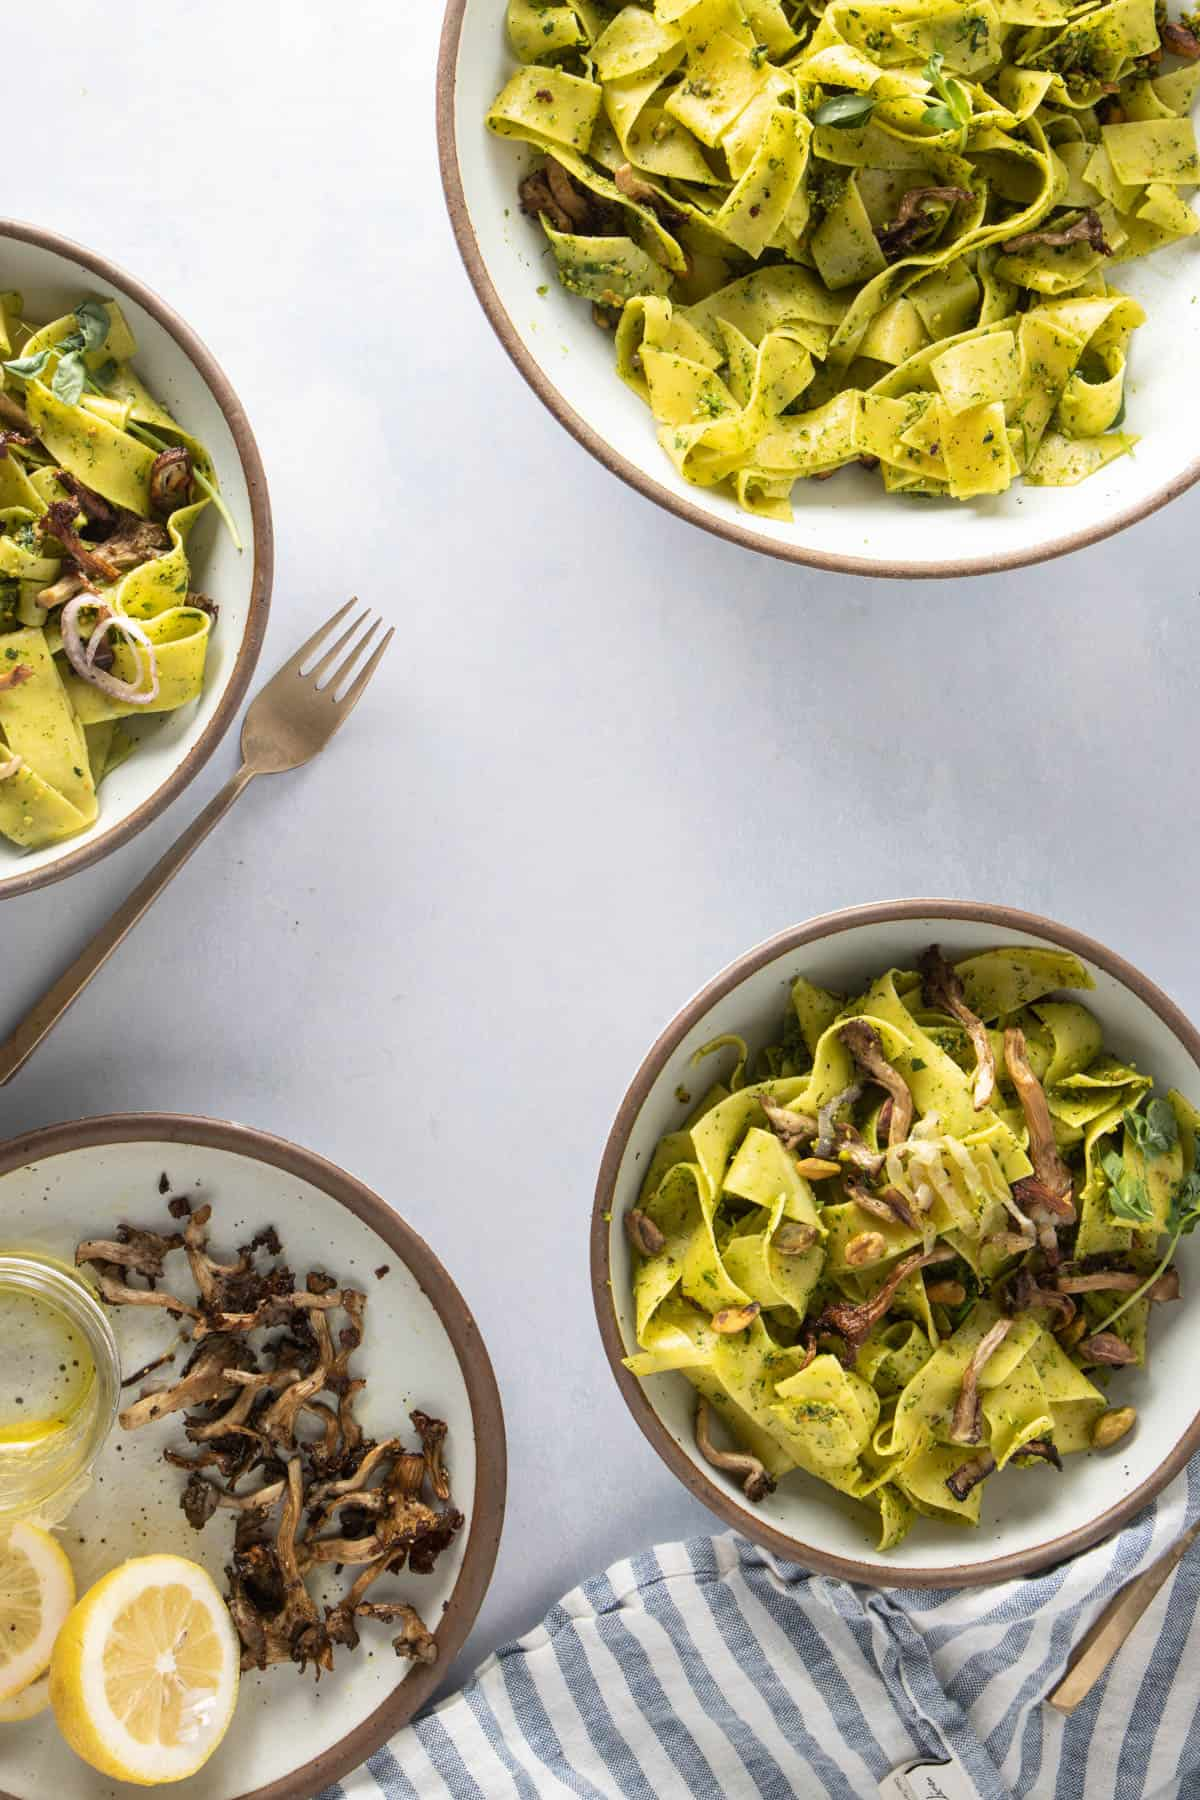 Three bowls of finished spring pasta, some garnishes on the side